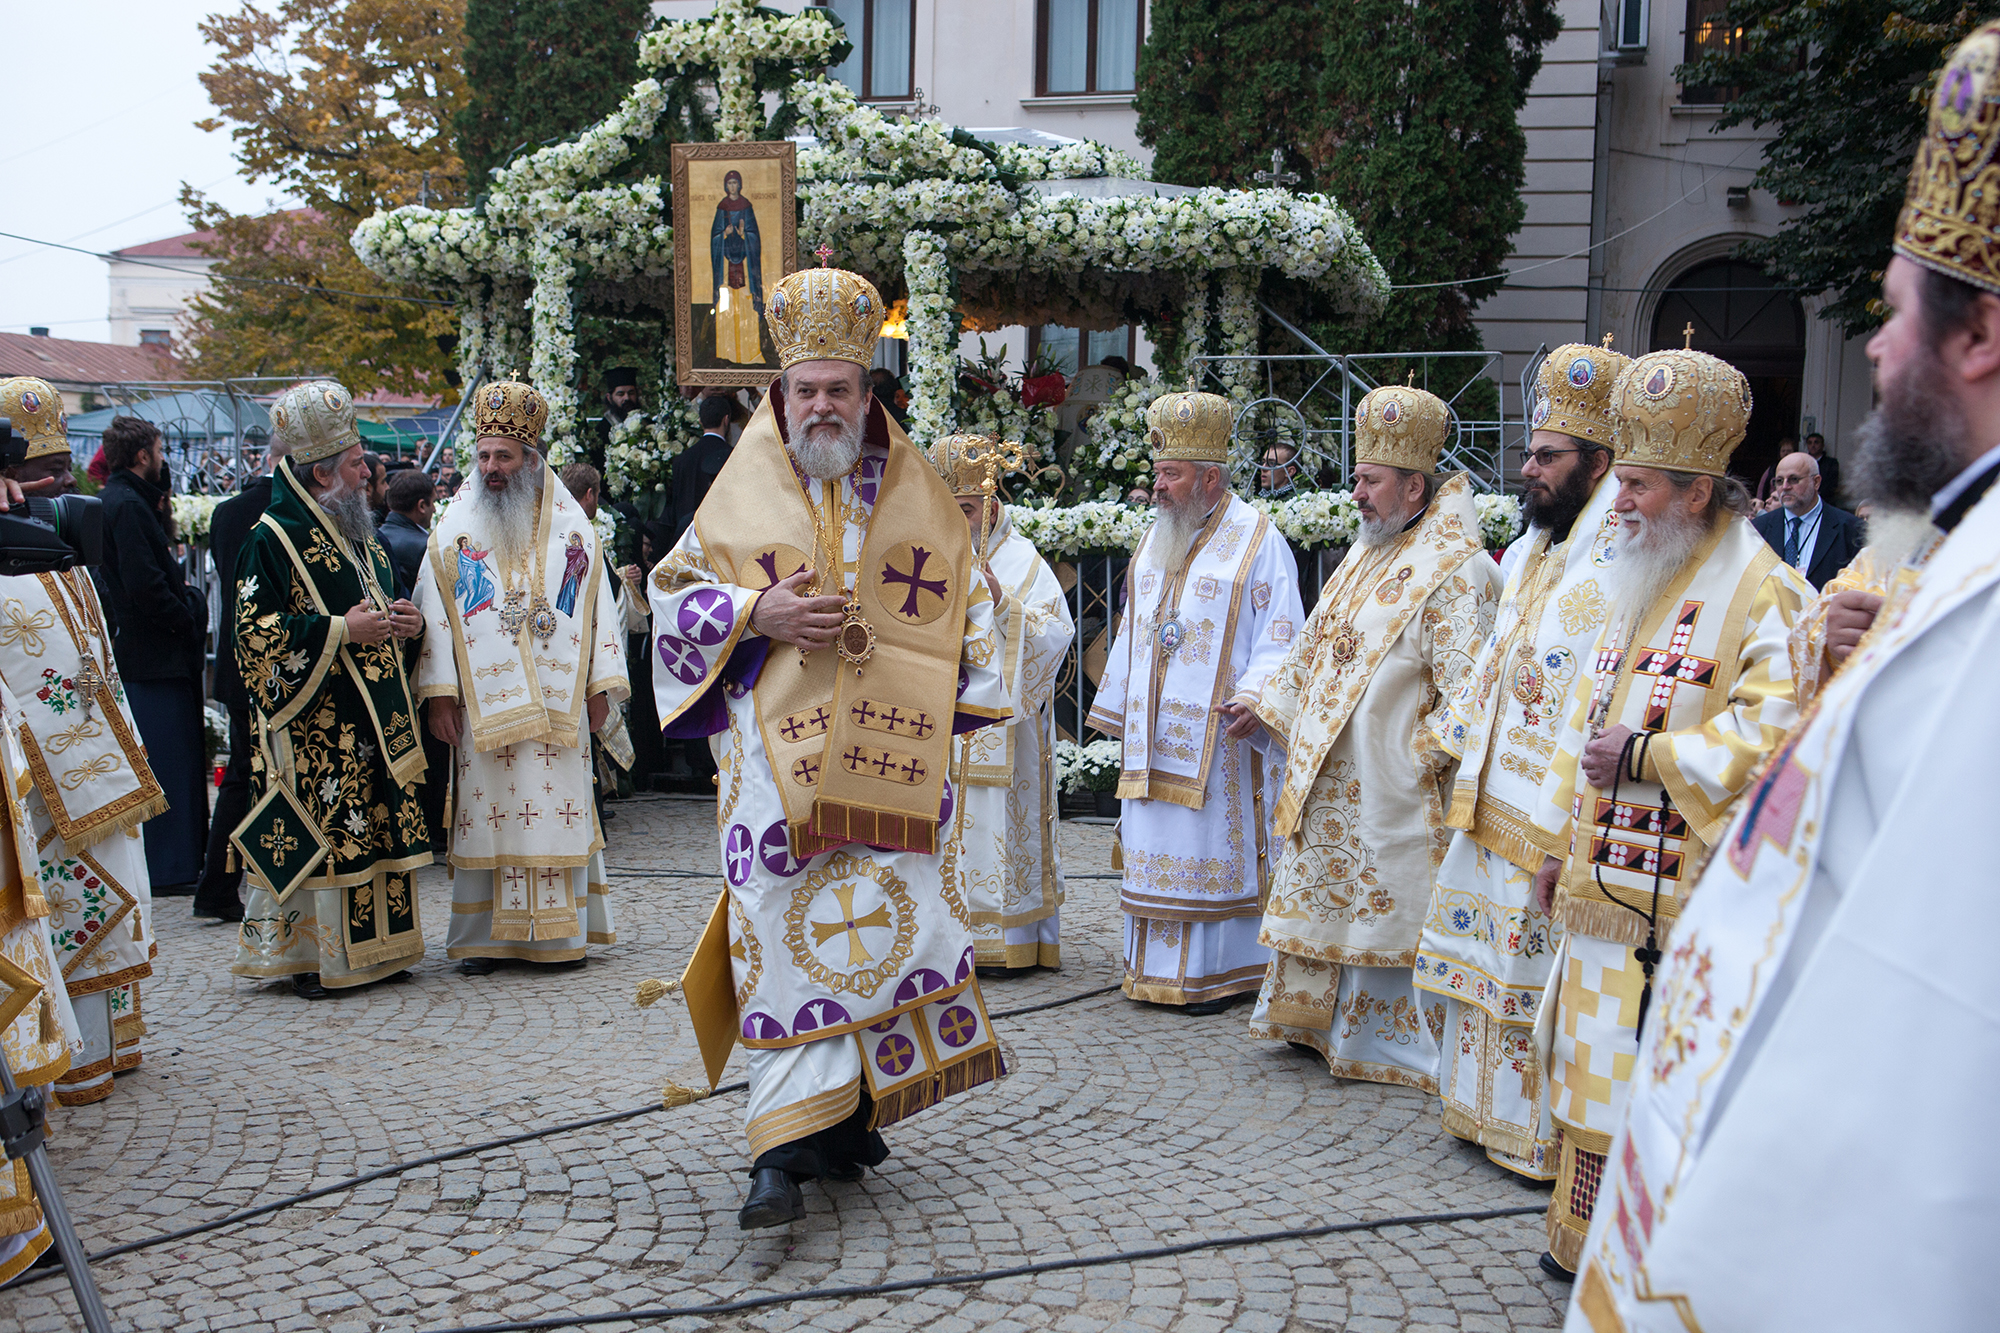 High priests of Romanian Orthodox Church gather at the relics of Saint Parascheva, in Iasi, October 14, 2013. She is considered the Patron Saint and Protector of Moldavia and each year, on October the 14th, on the Saint's Day, hundreds of thousands of people from all over the county and abroad come on a pilgrimage.